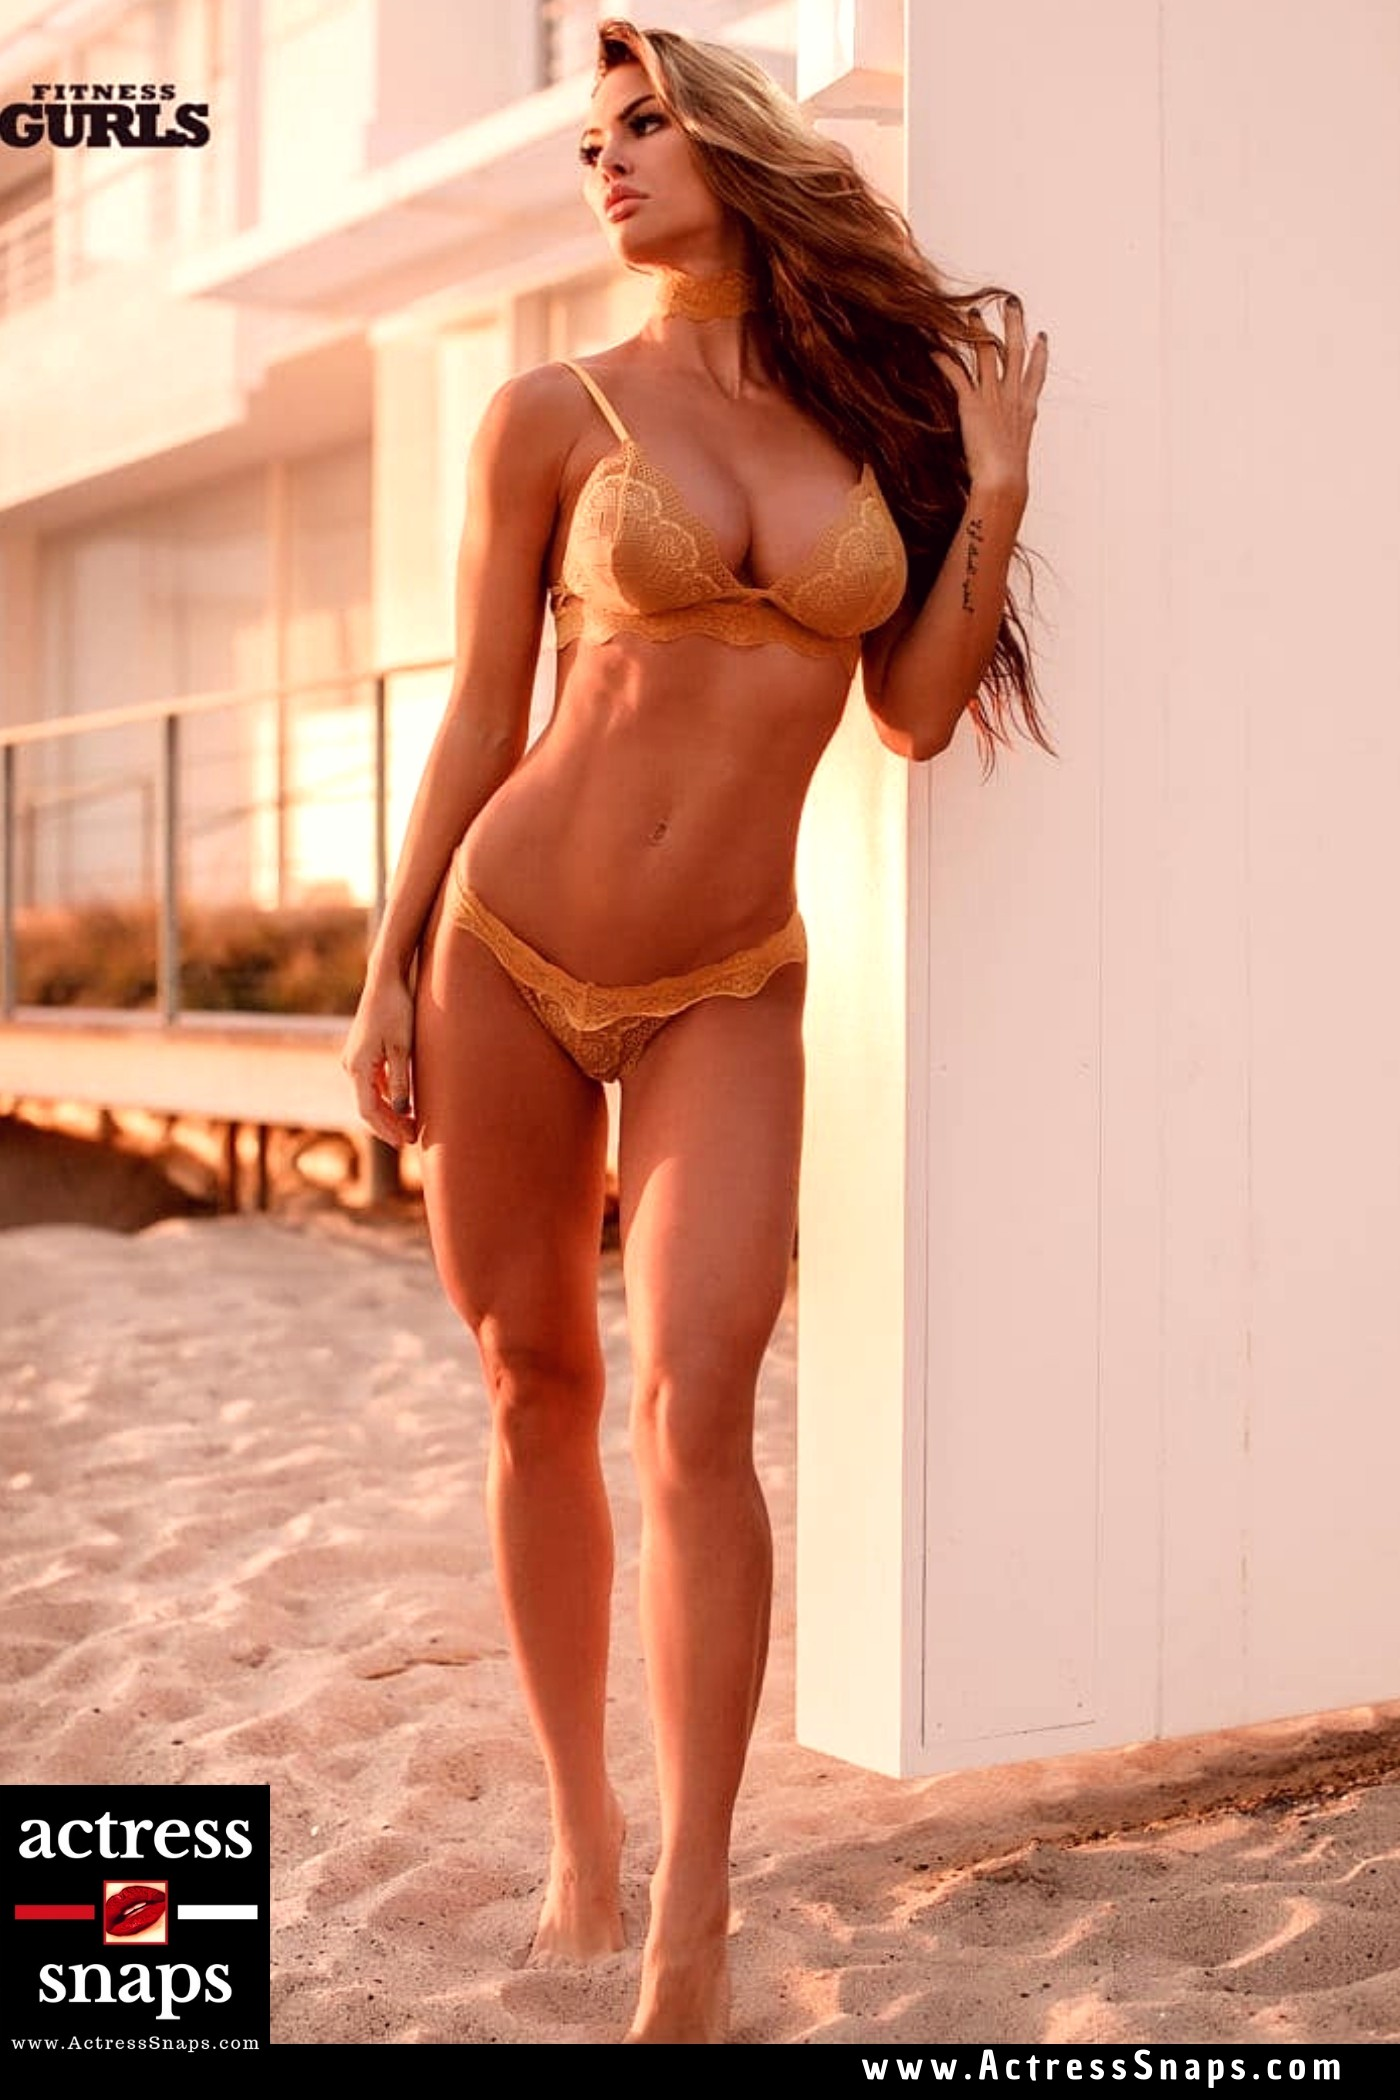 Katelyn Runck - Fitness Gurls Magazine - Sexy Actress Pictures | Hot Actress Pictures - ActressSnaps.com